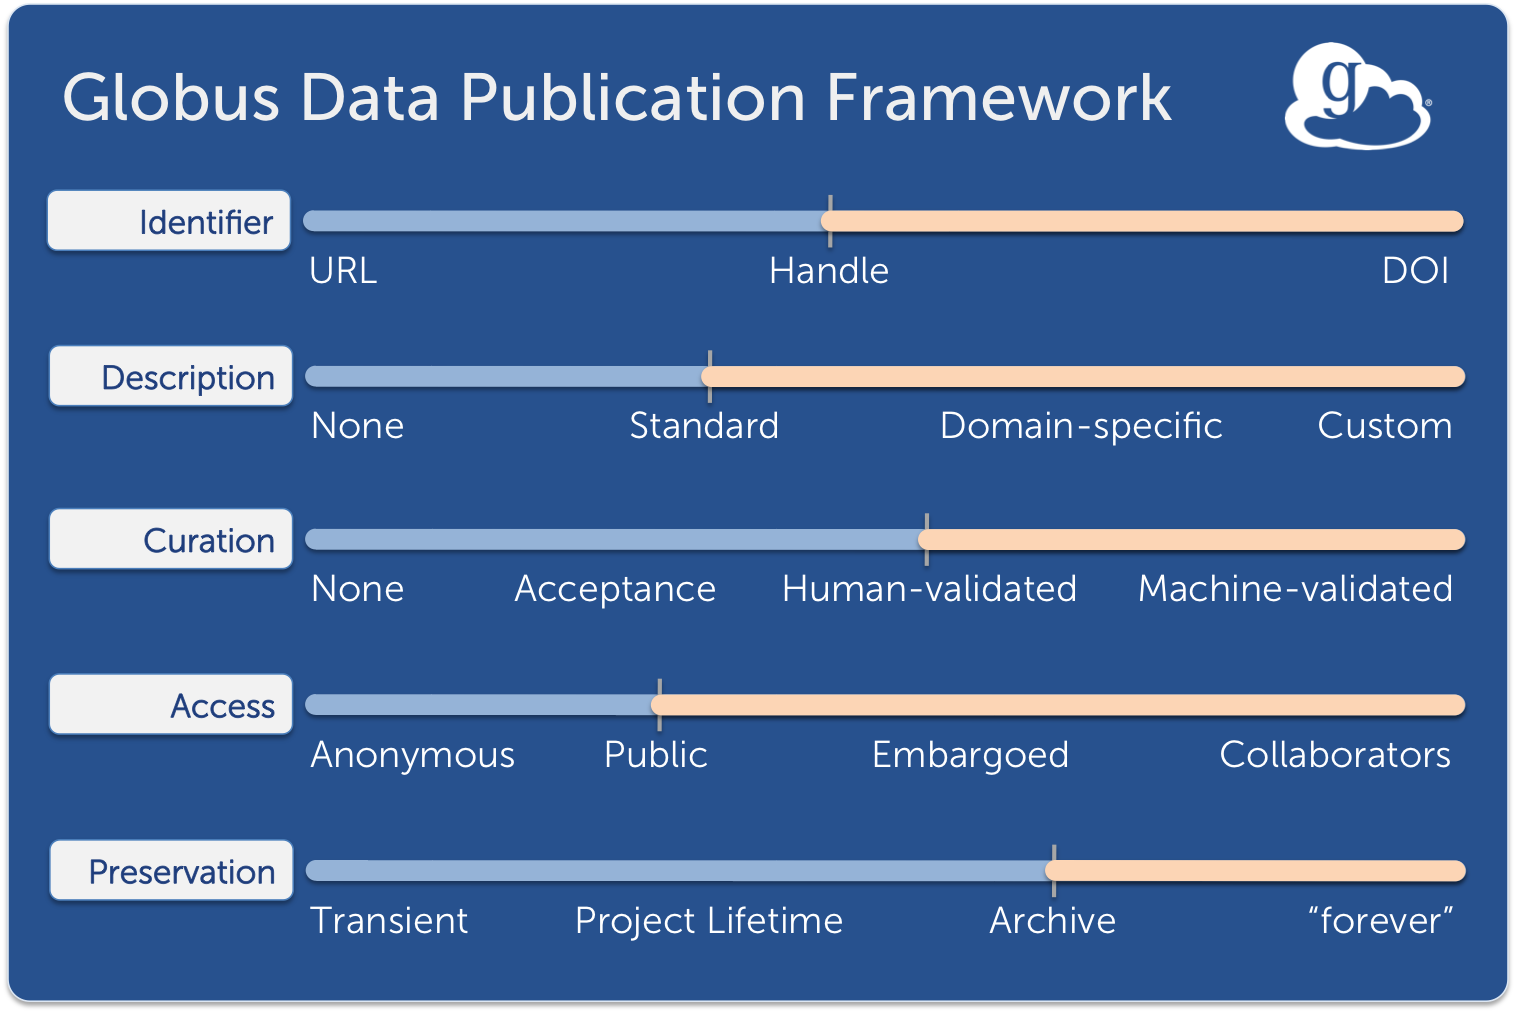 Globus Data Publication Framework